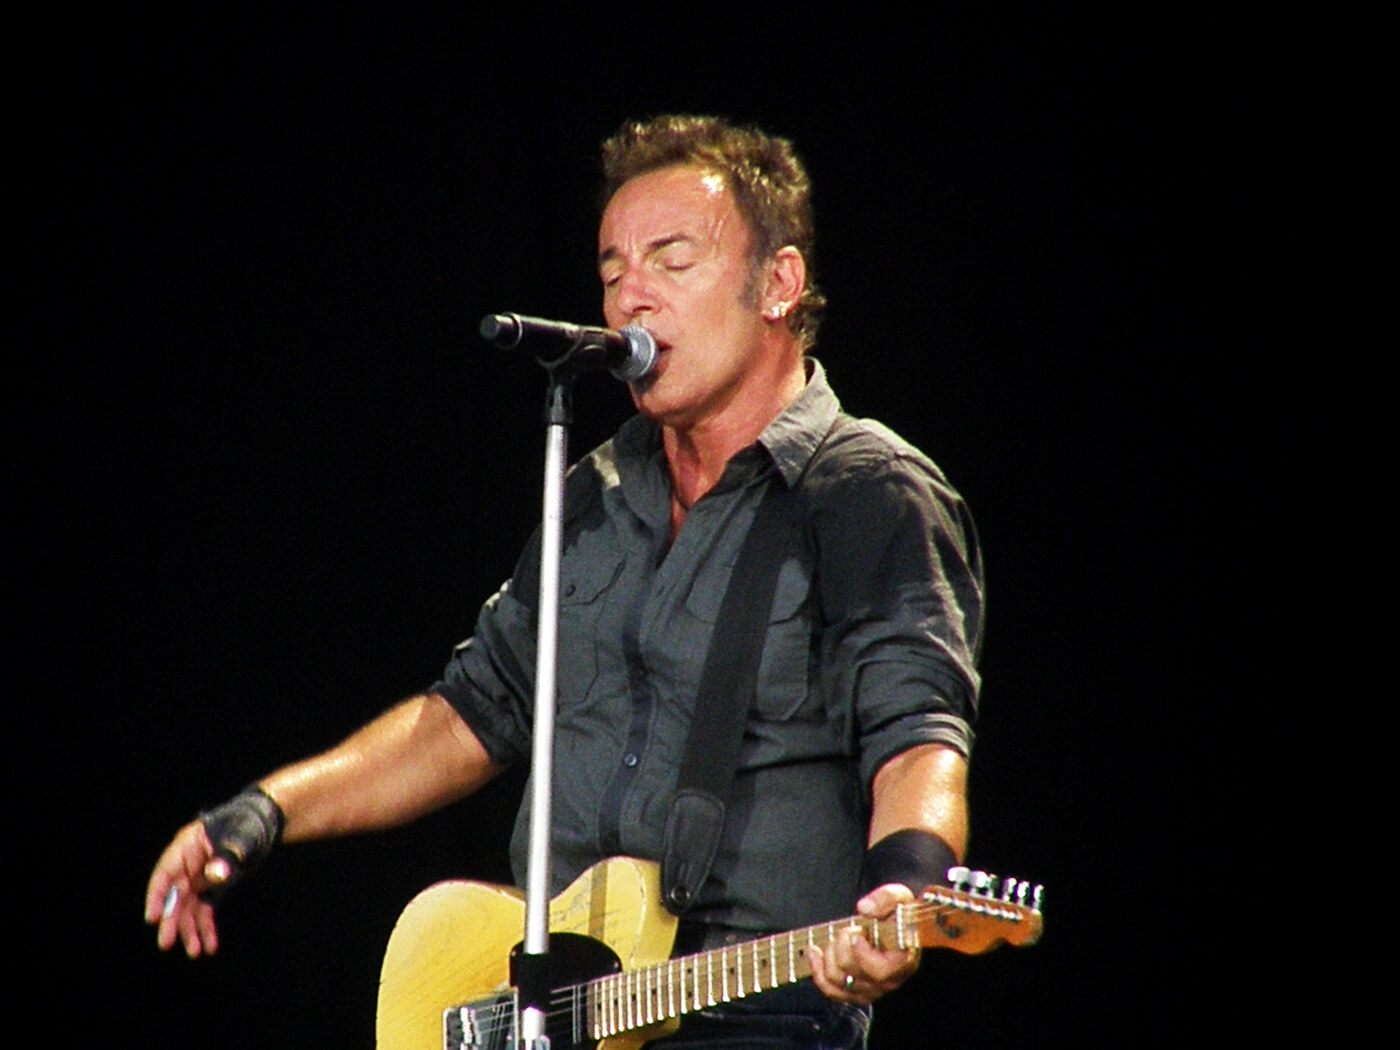 Watch Bruce Springsteen's entire 2009 Hyde Park concert